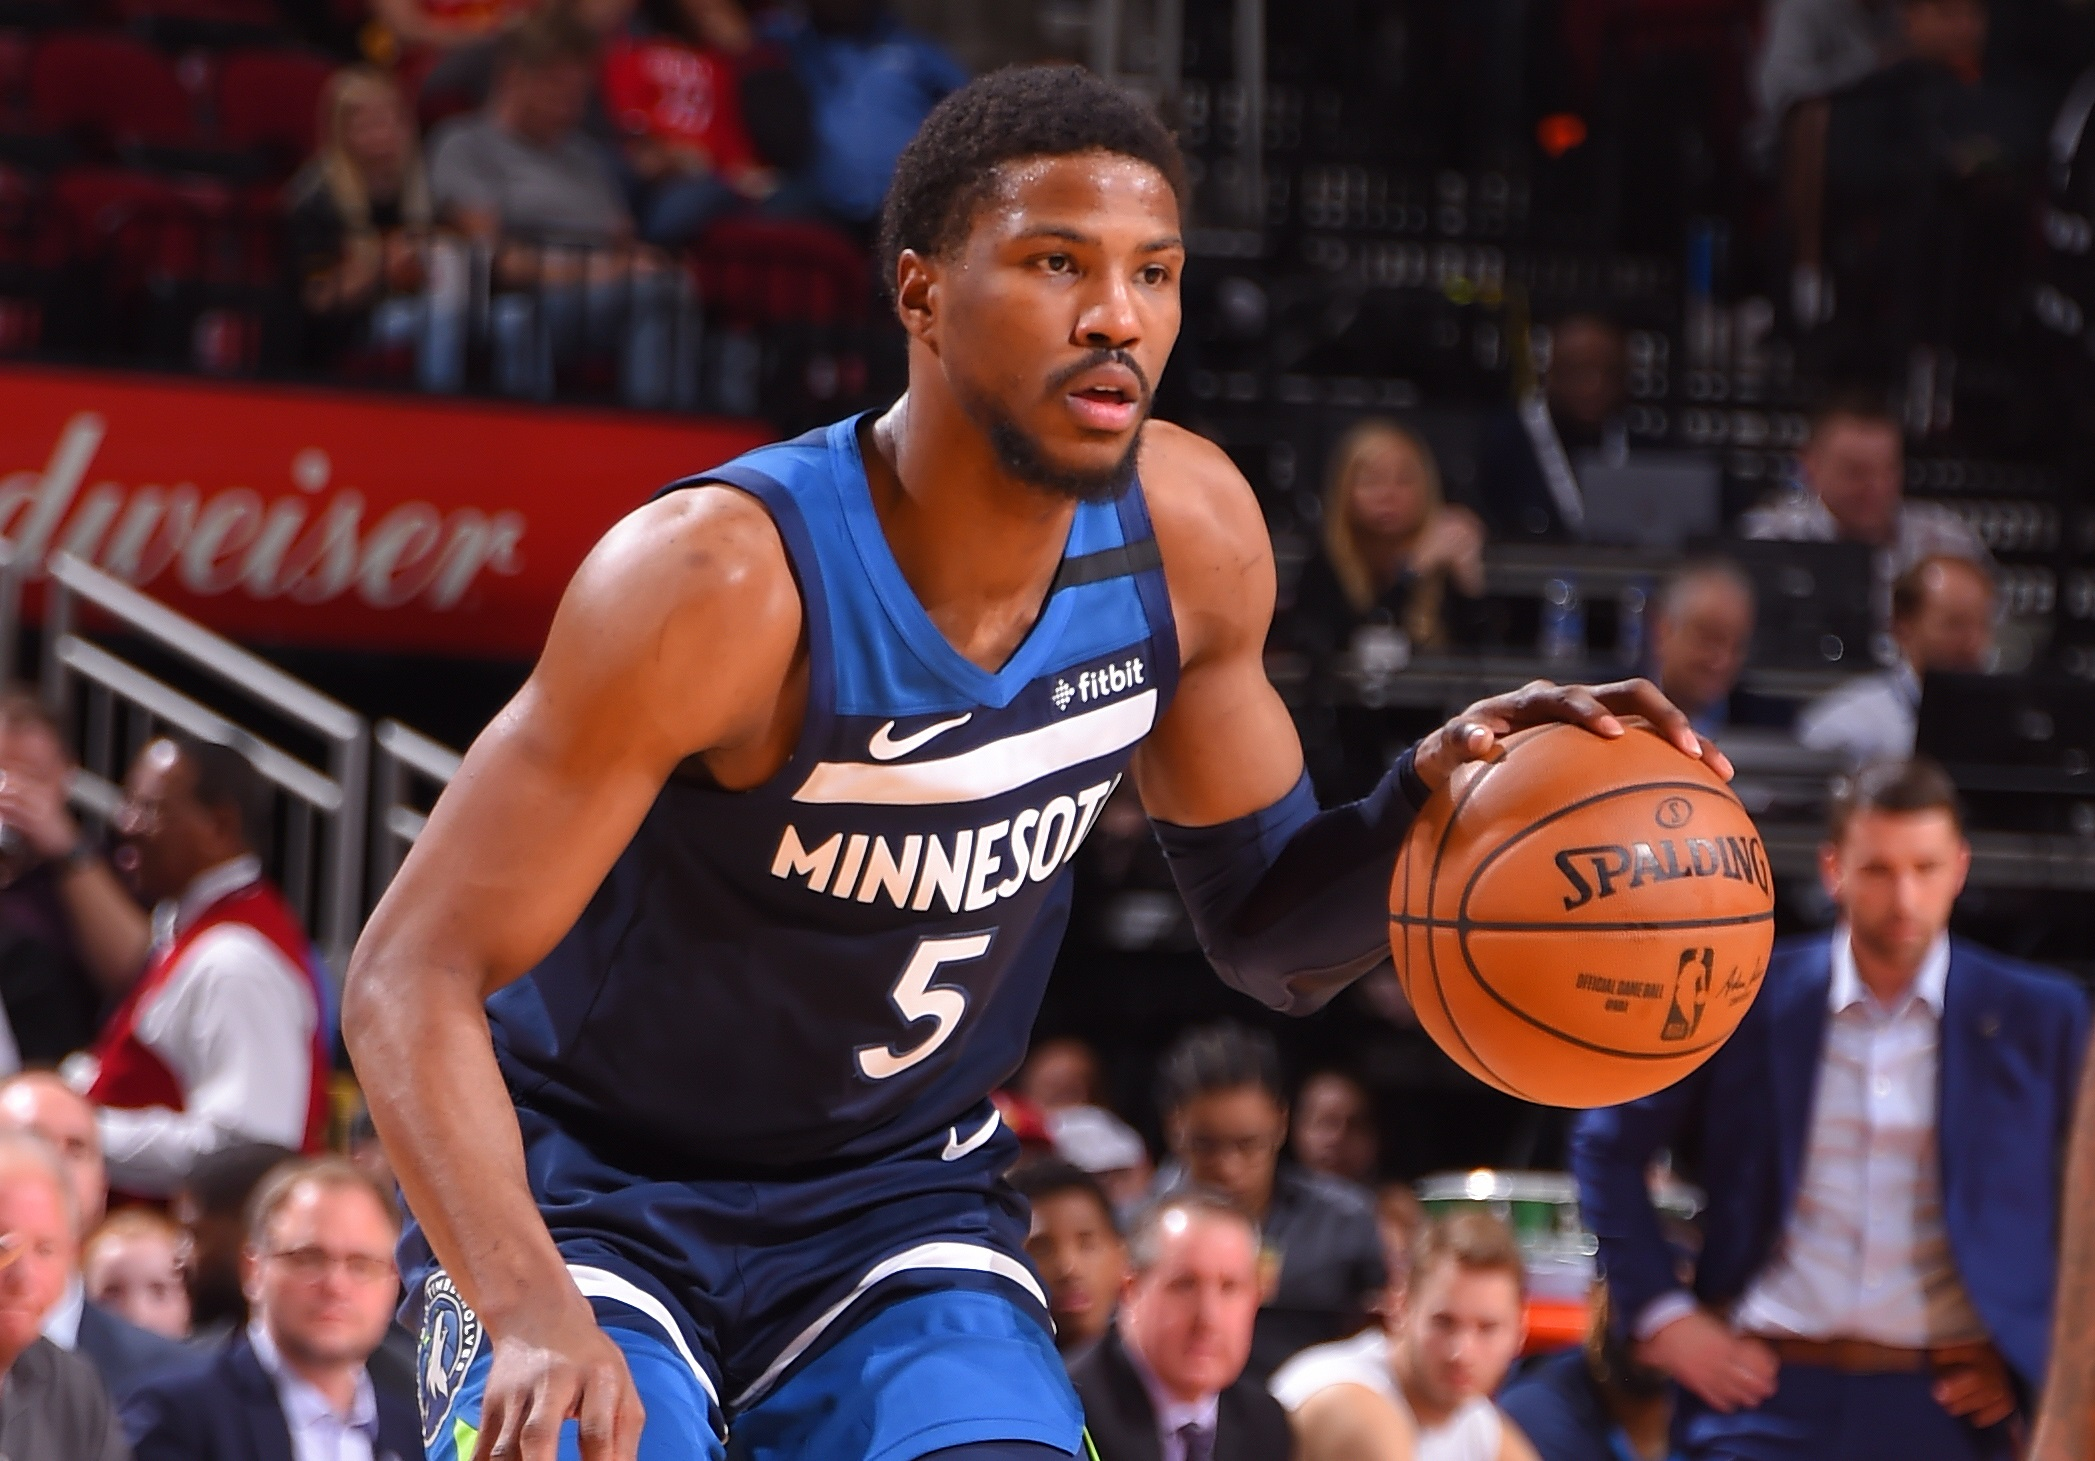 Minnesota Timberwolves guard Malik Beasley charged with threatening strangers with gun